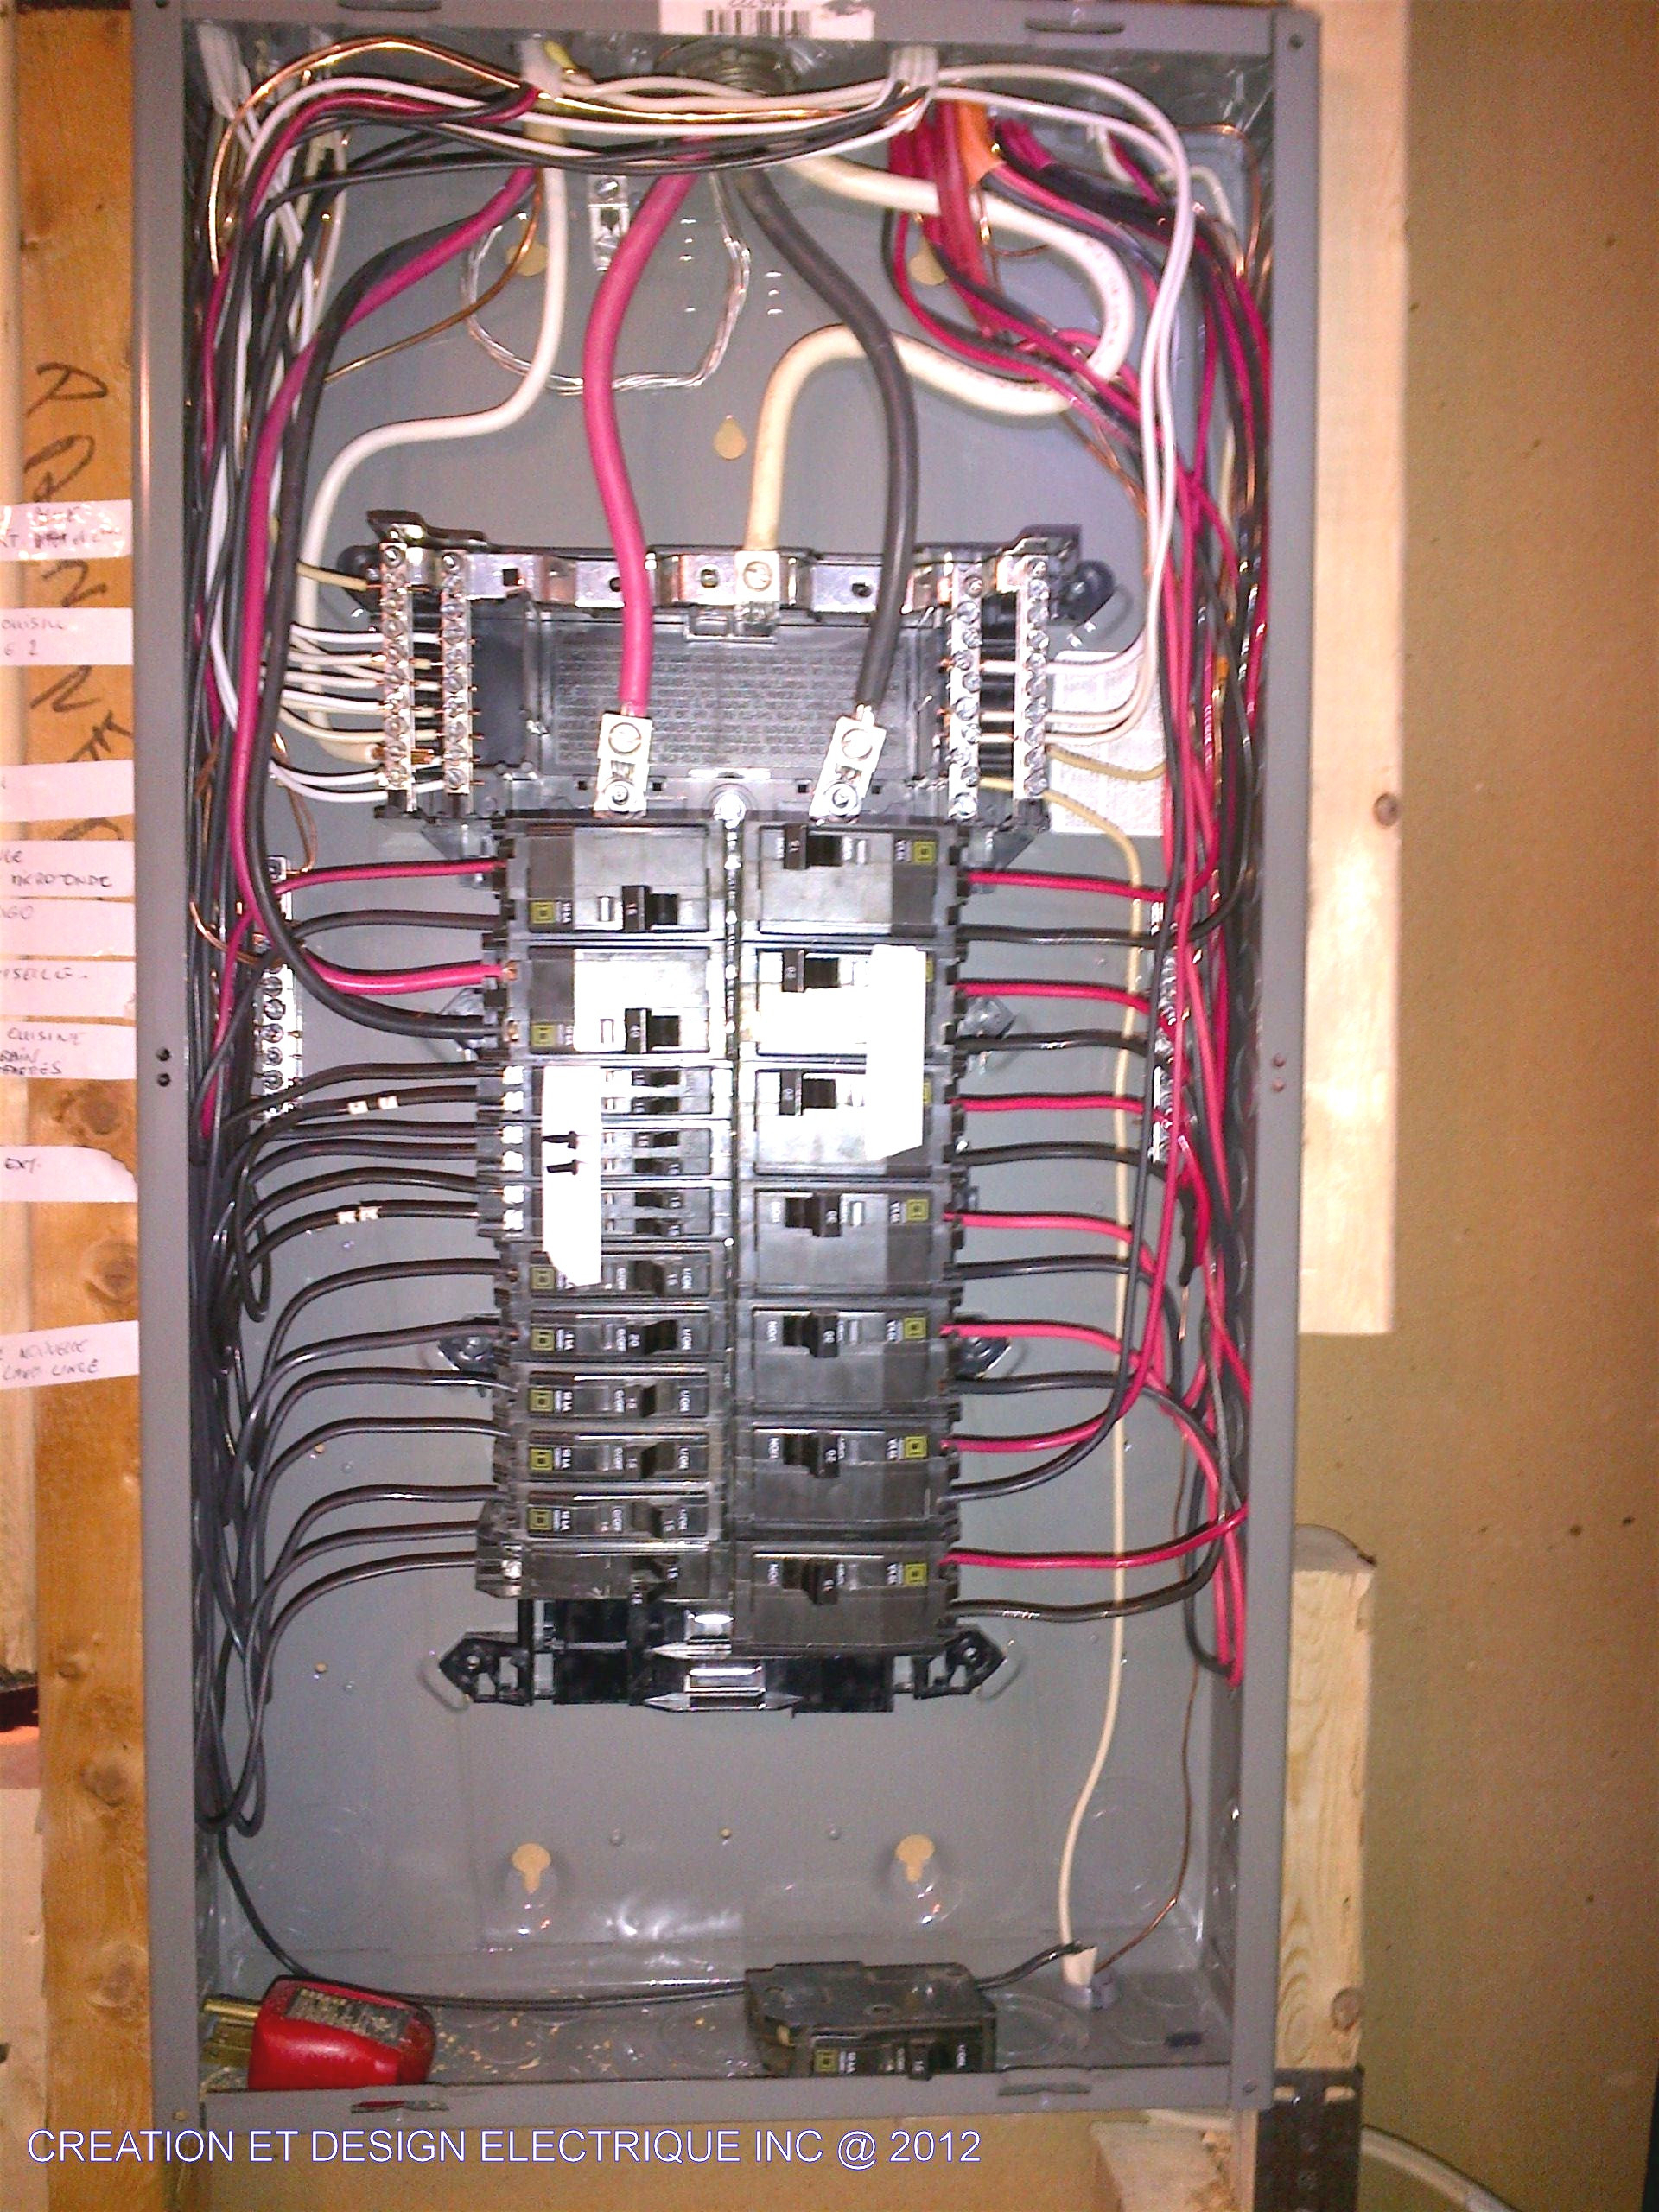 Ge Load Center Wiring Diagram from wholefoodsonabudget.com